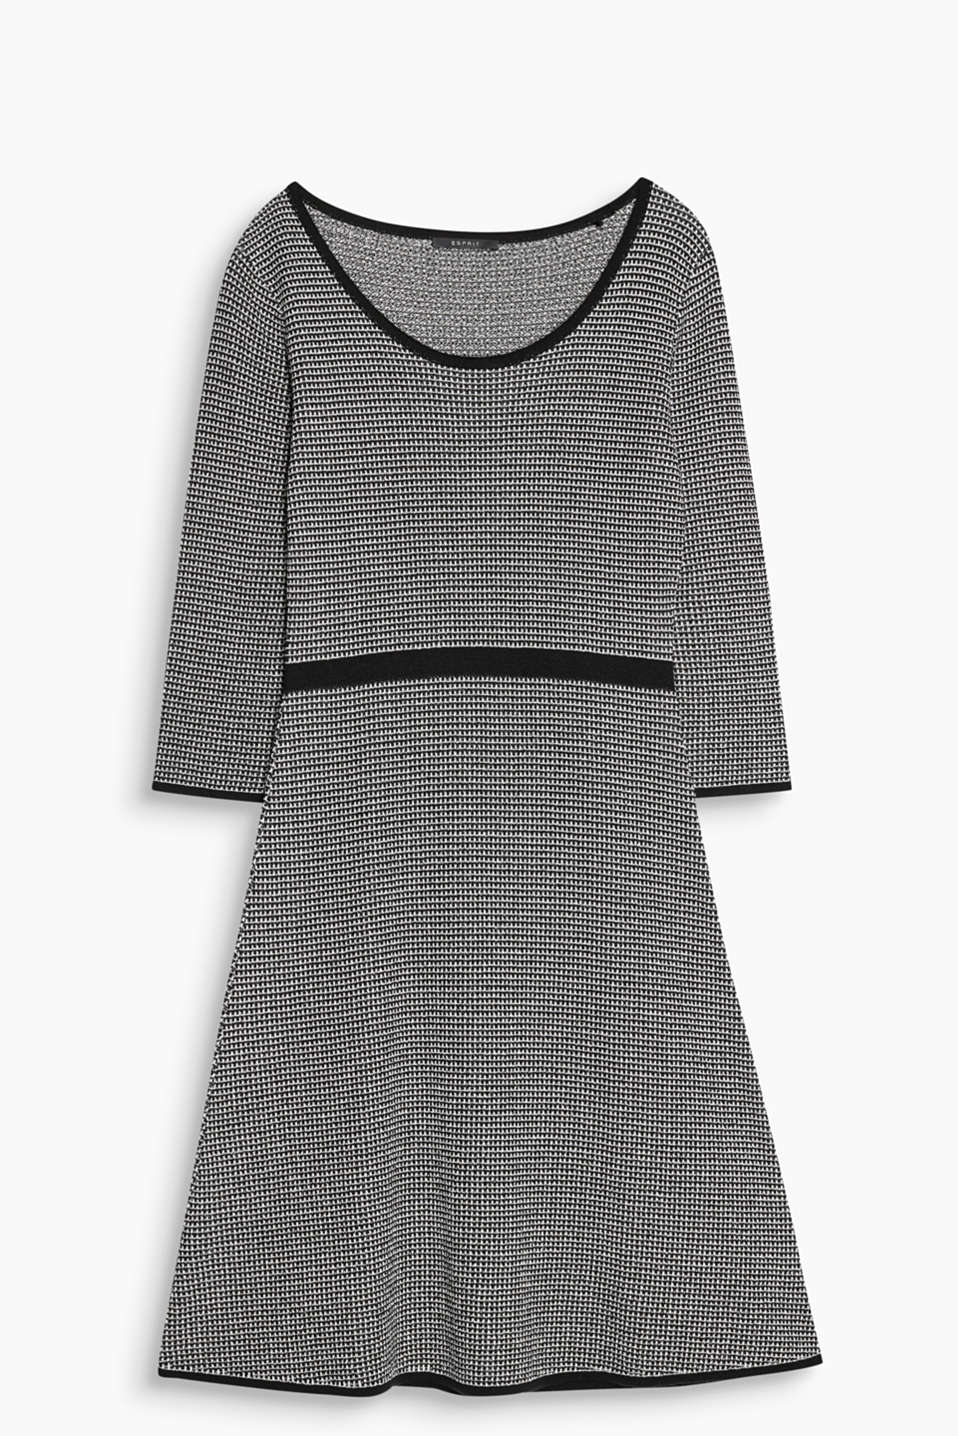 Feminine, comfortable and retro-chic: knitted dress with texture, three-quarter length sleeves and a swirling skirt